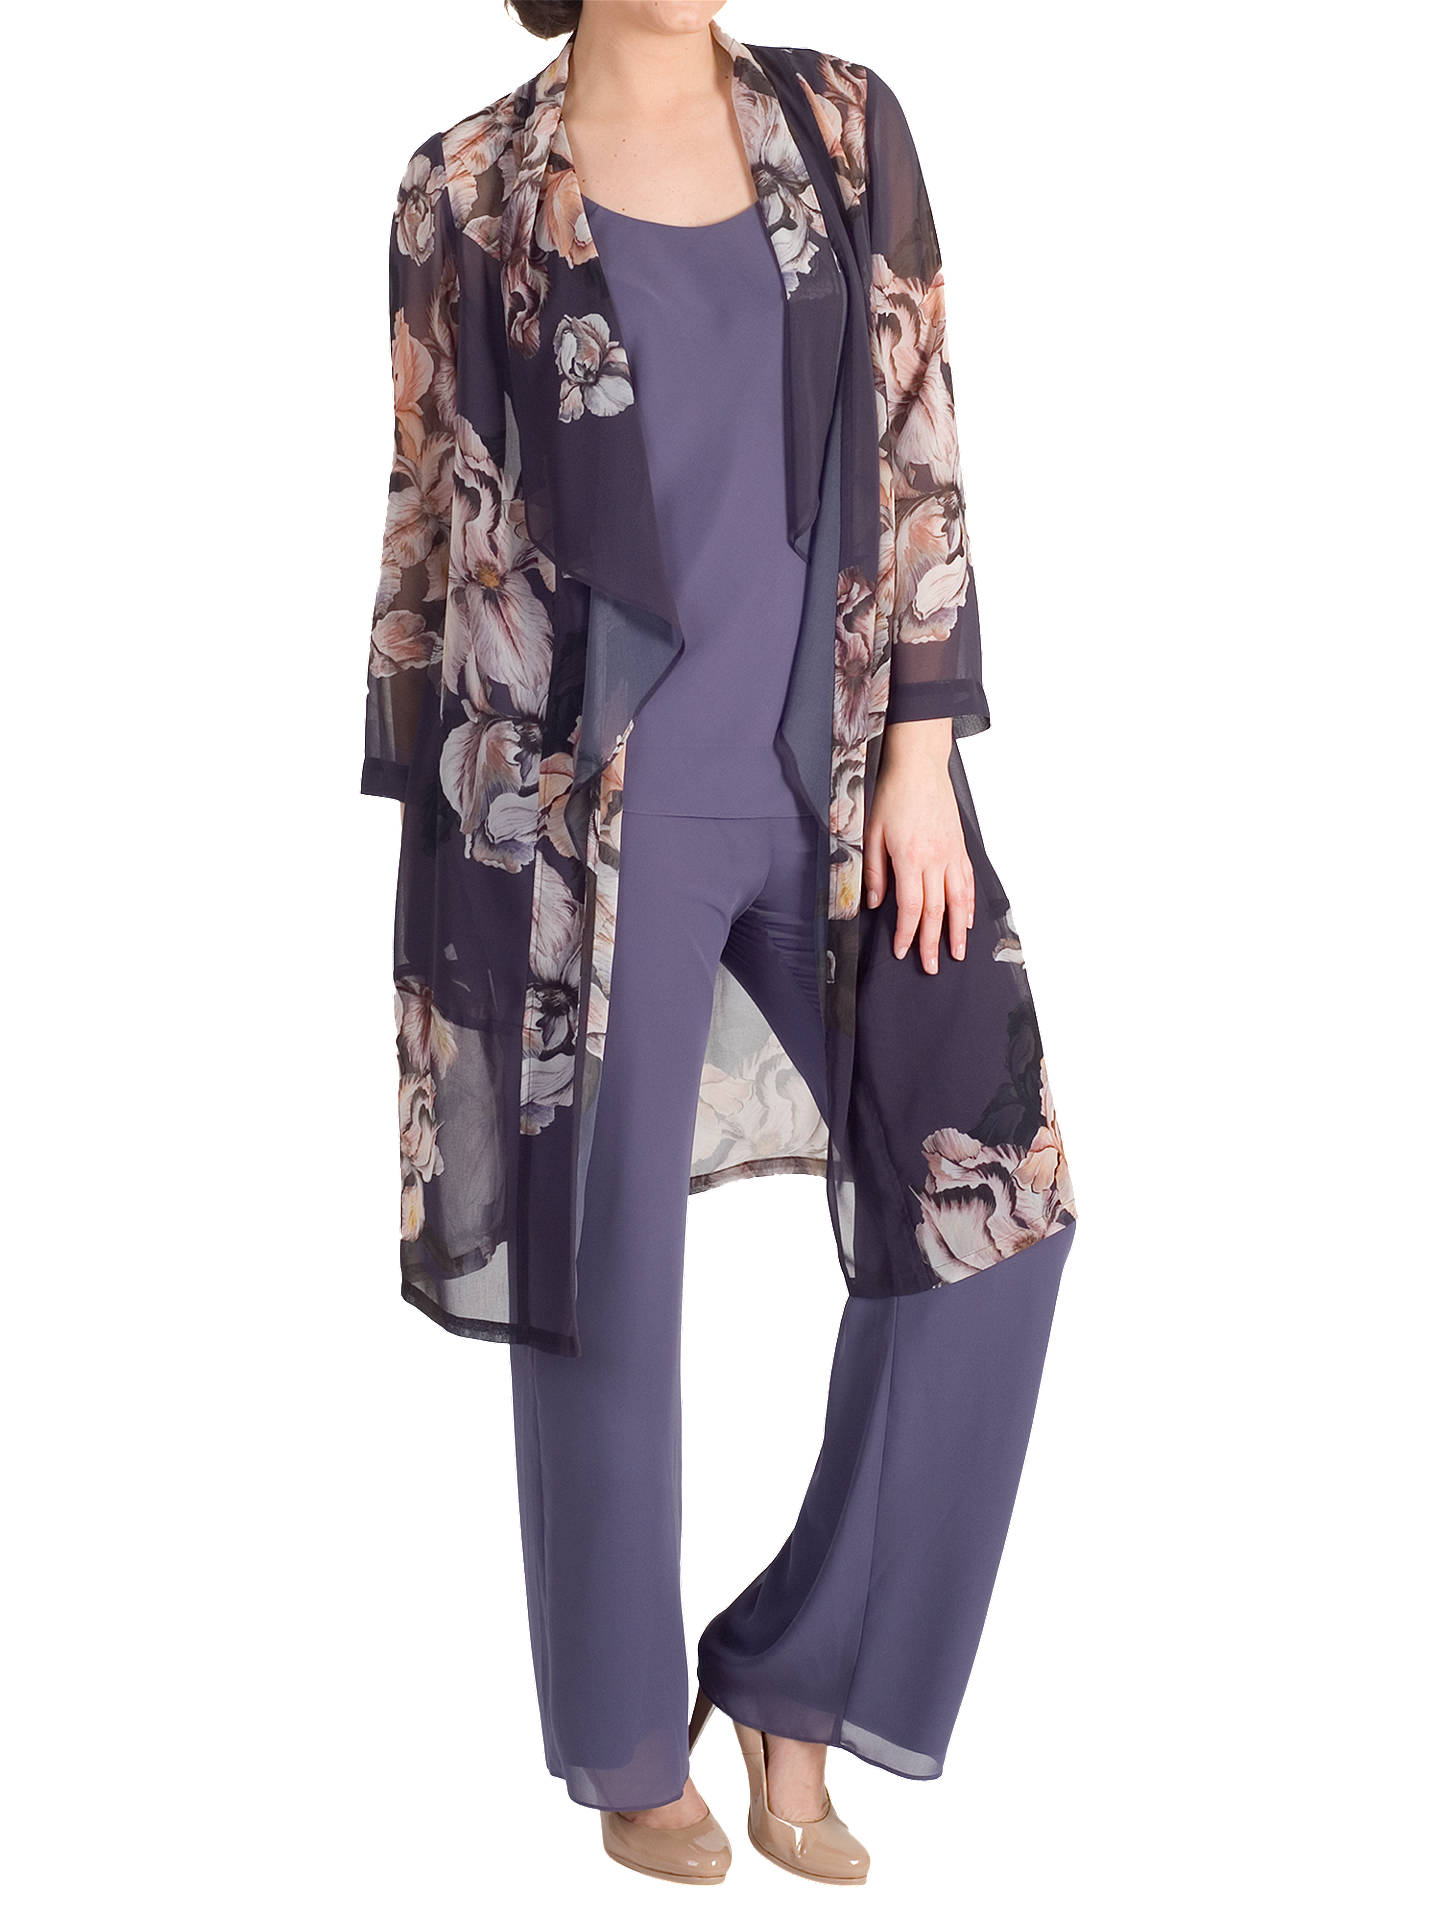 BuyChesca Satin Trim Chiffon Trousers, Hyacinth, 14 Online at johnlewis.com